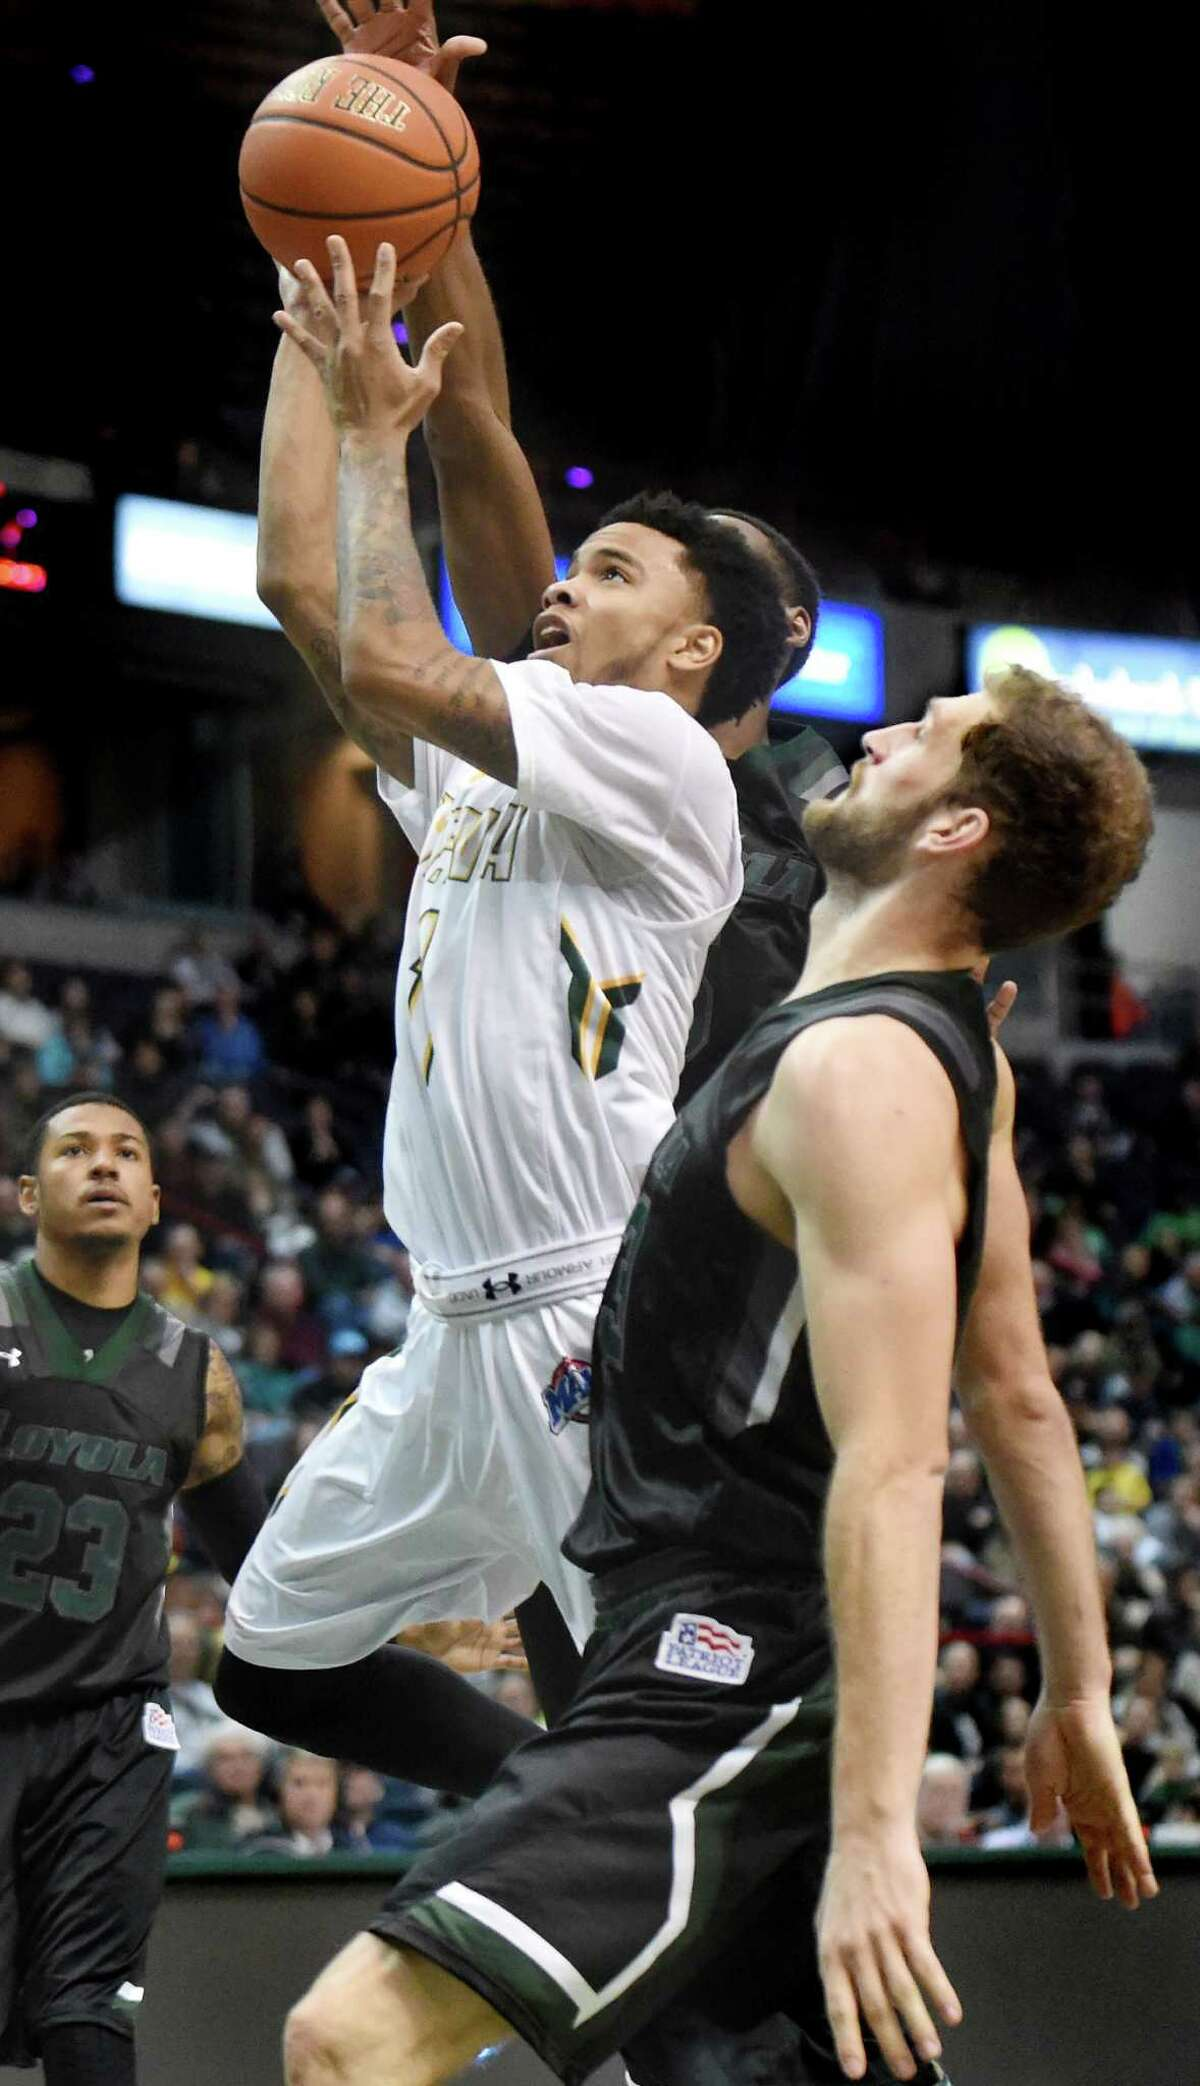 Siena's Marquis Wright, center, breaks for the hoop through Loyola's defense during their basketball game on Saturday, Nov. 28, 2015, at Times Union Center in Albany, N.Y. (Cindy Schultz / Times Union)